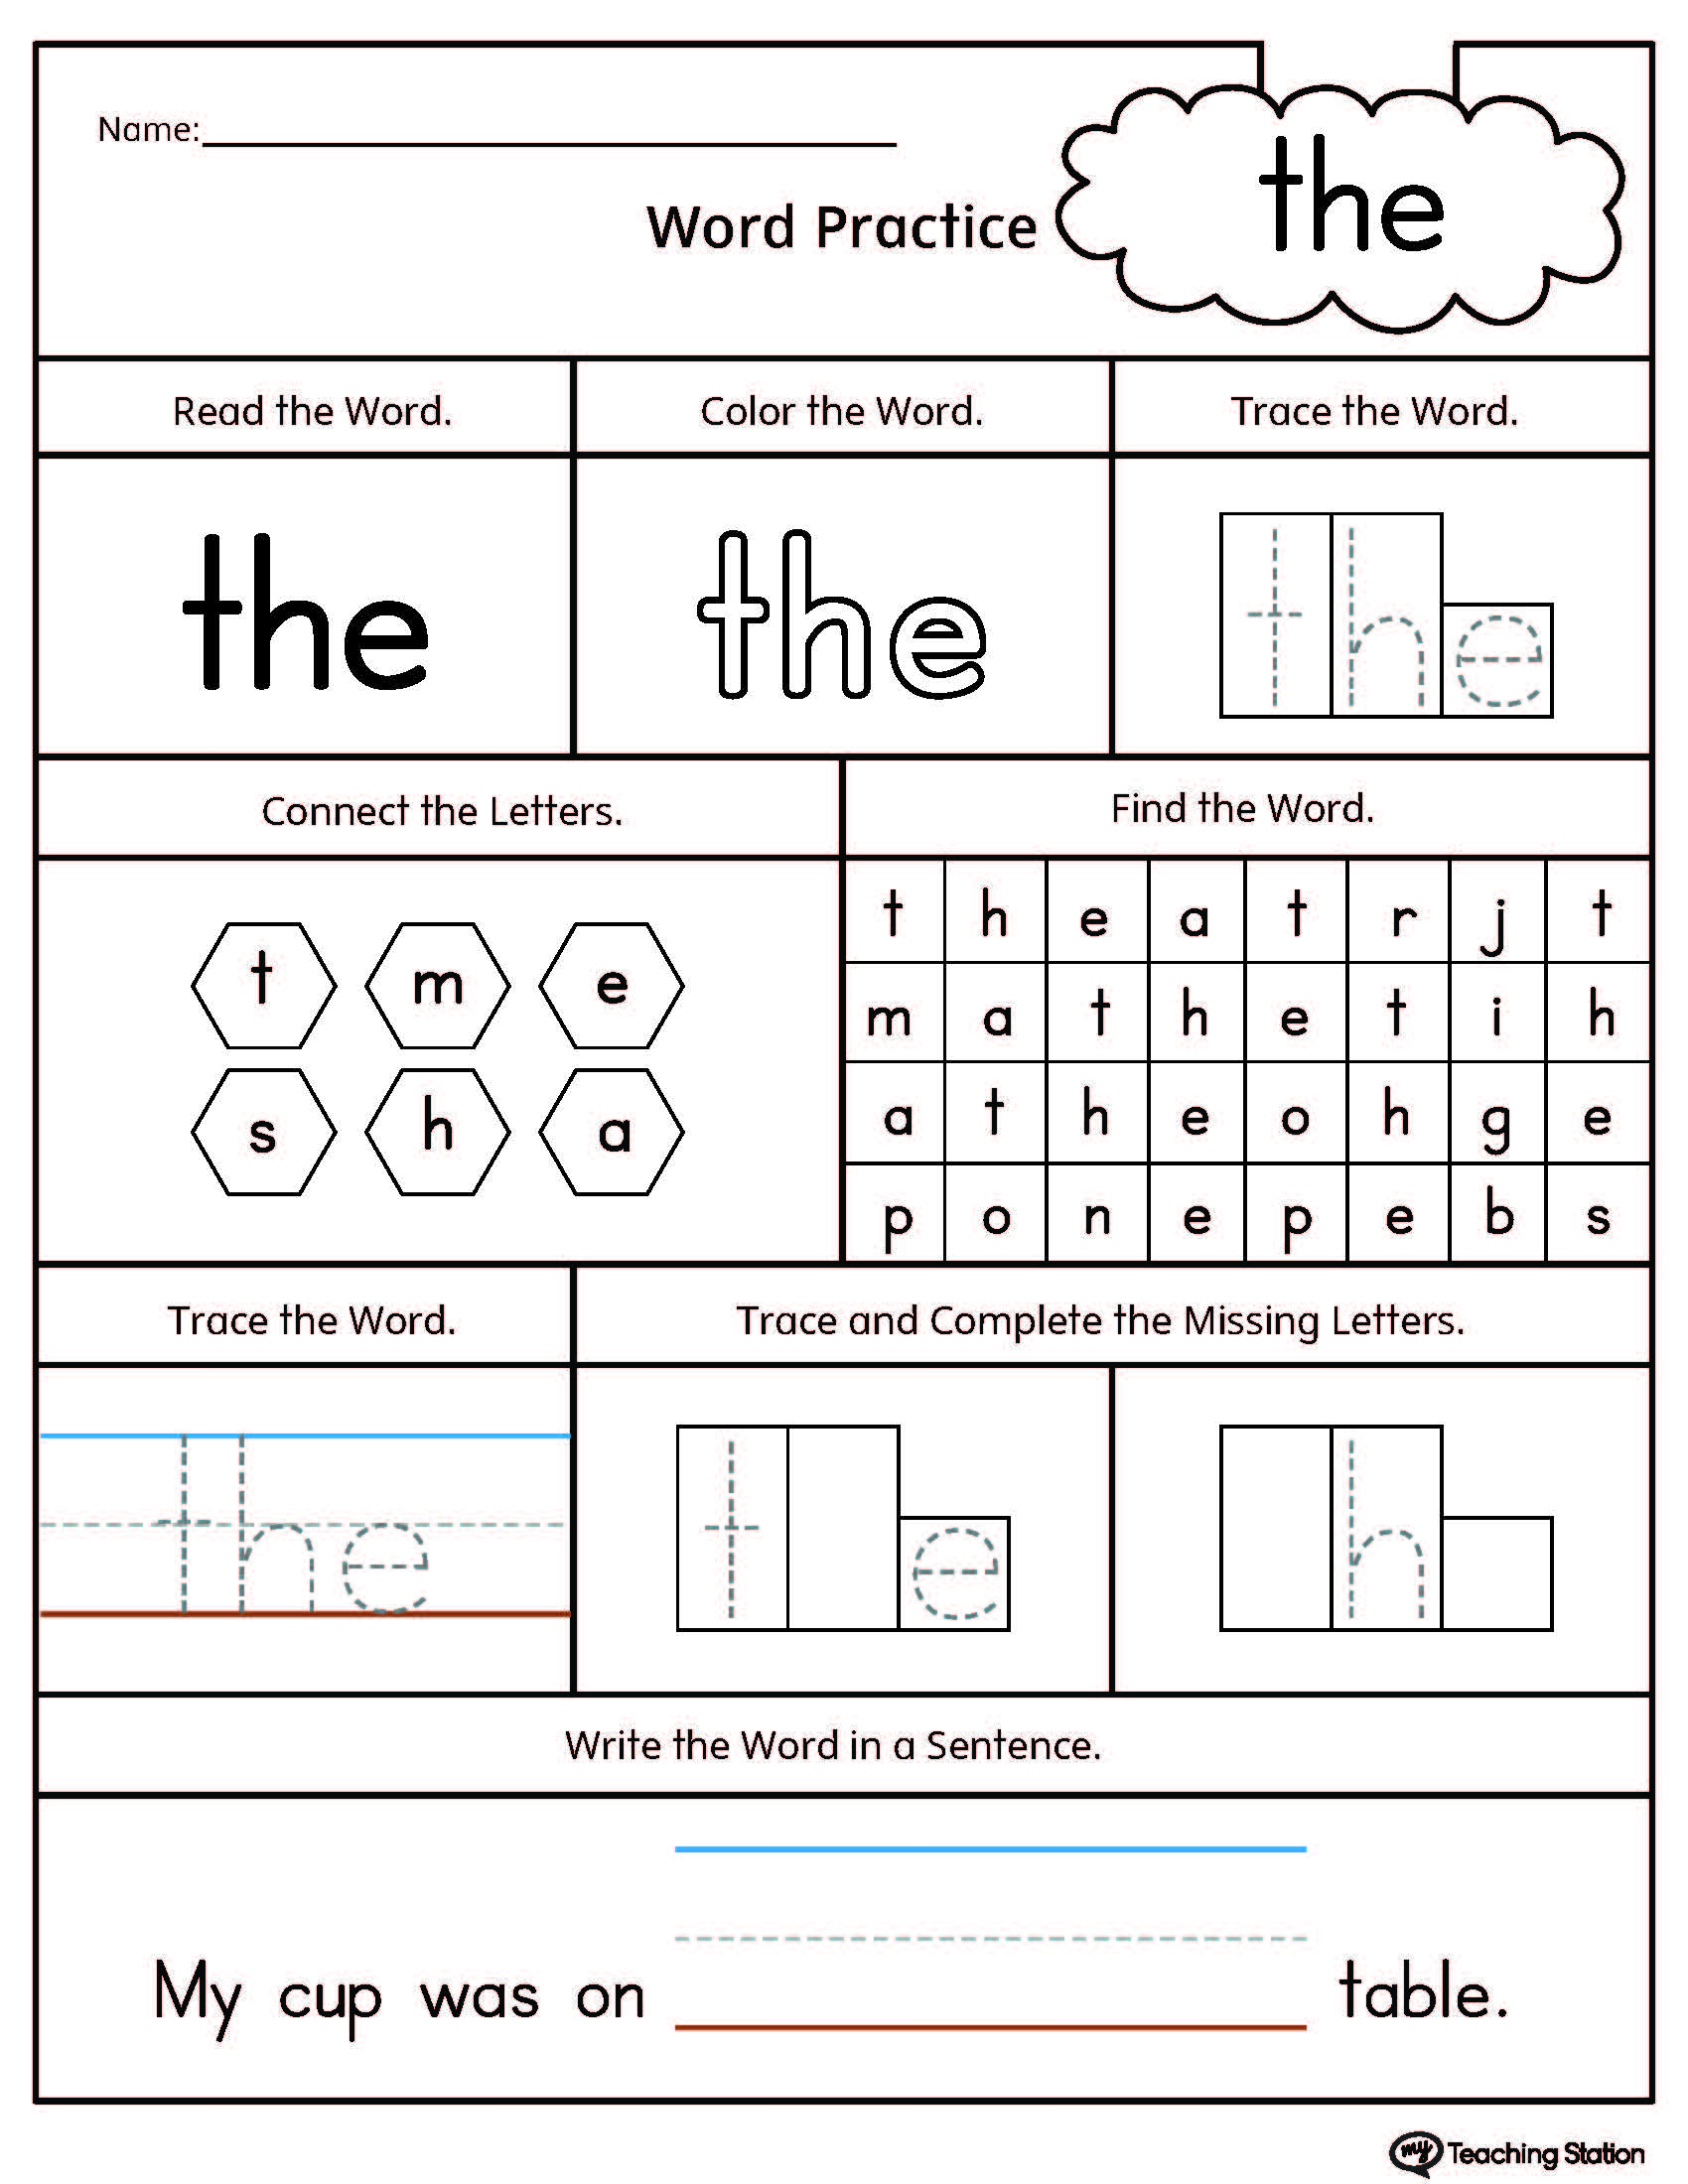 Worksheets Free Printable Worksheets For Kindergarten Sight Words high frequency words printable worksheets myteachingstation com sight word the worksheet